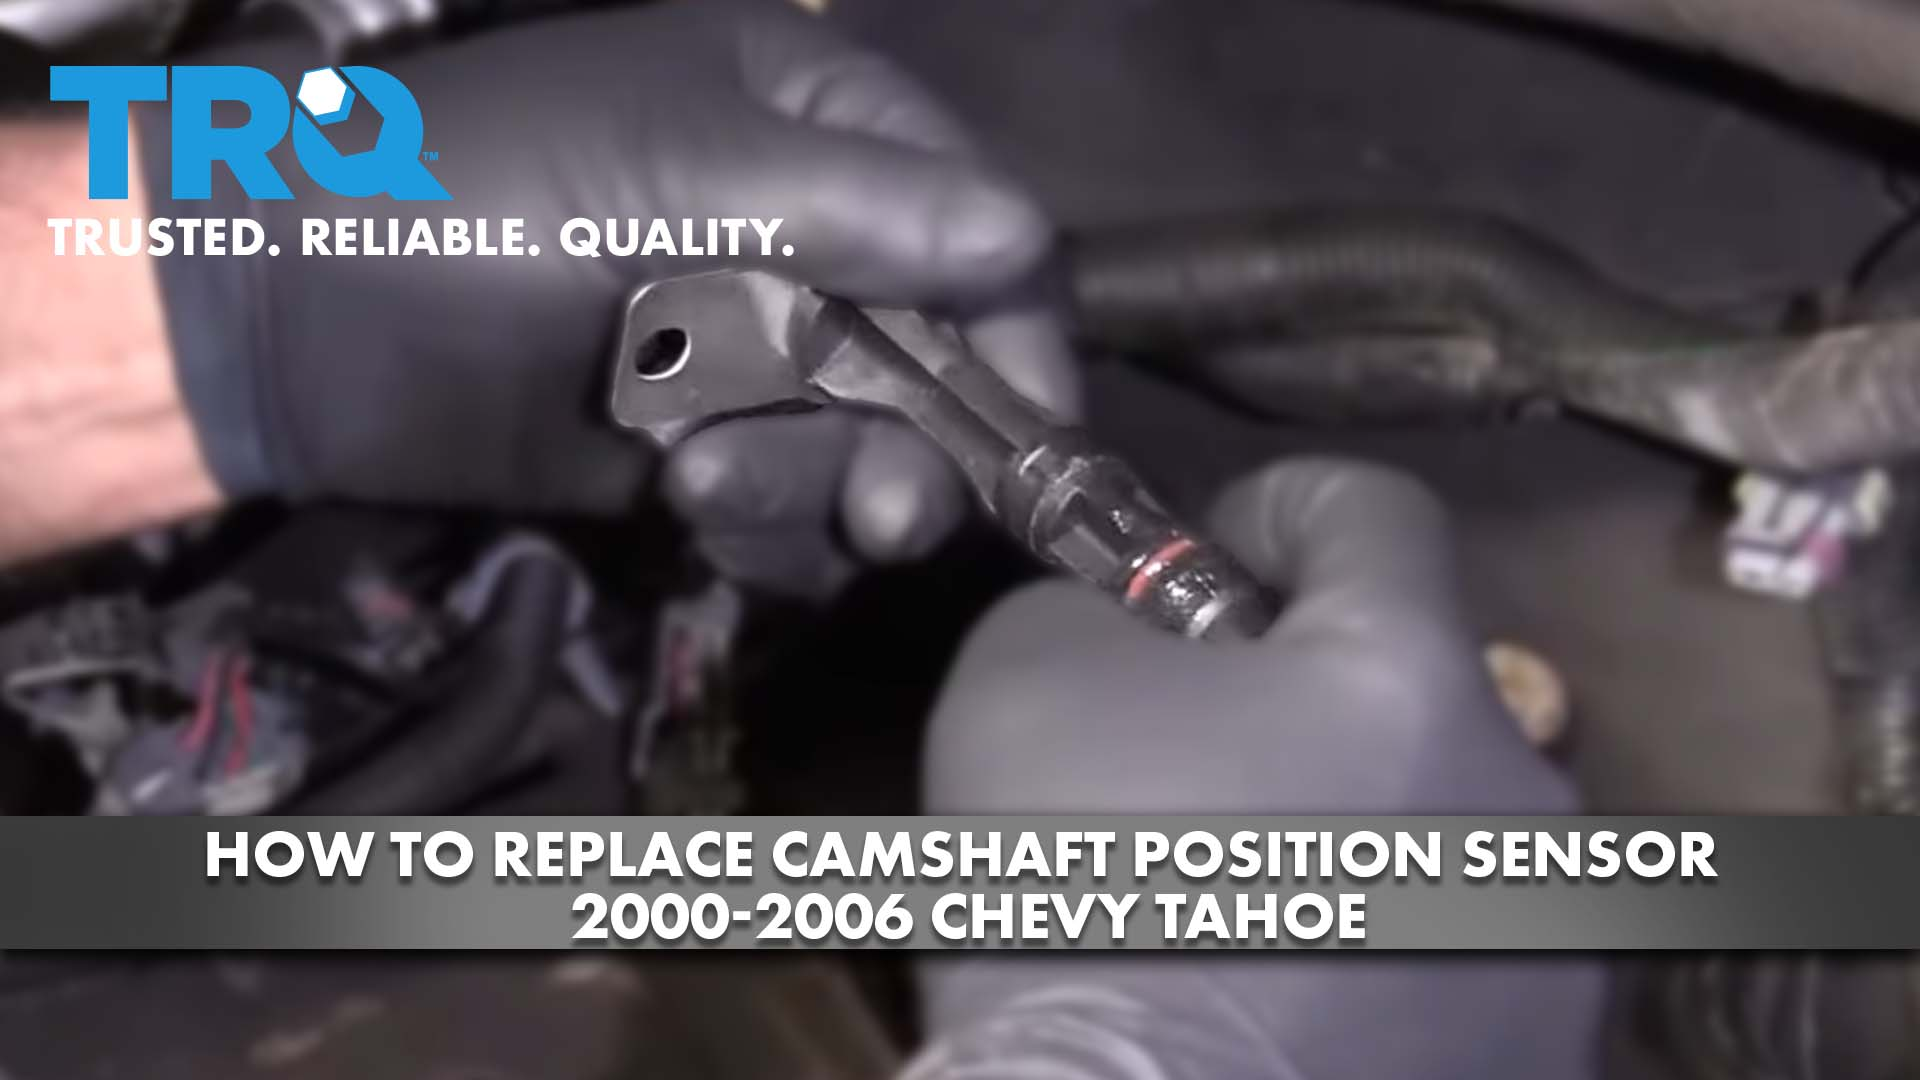 How To Replace Camshaft Position Sensor 2000-06 Chevy Tahoe